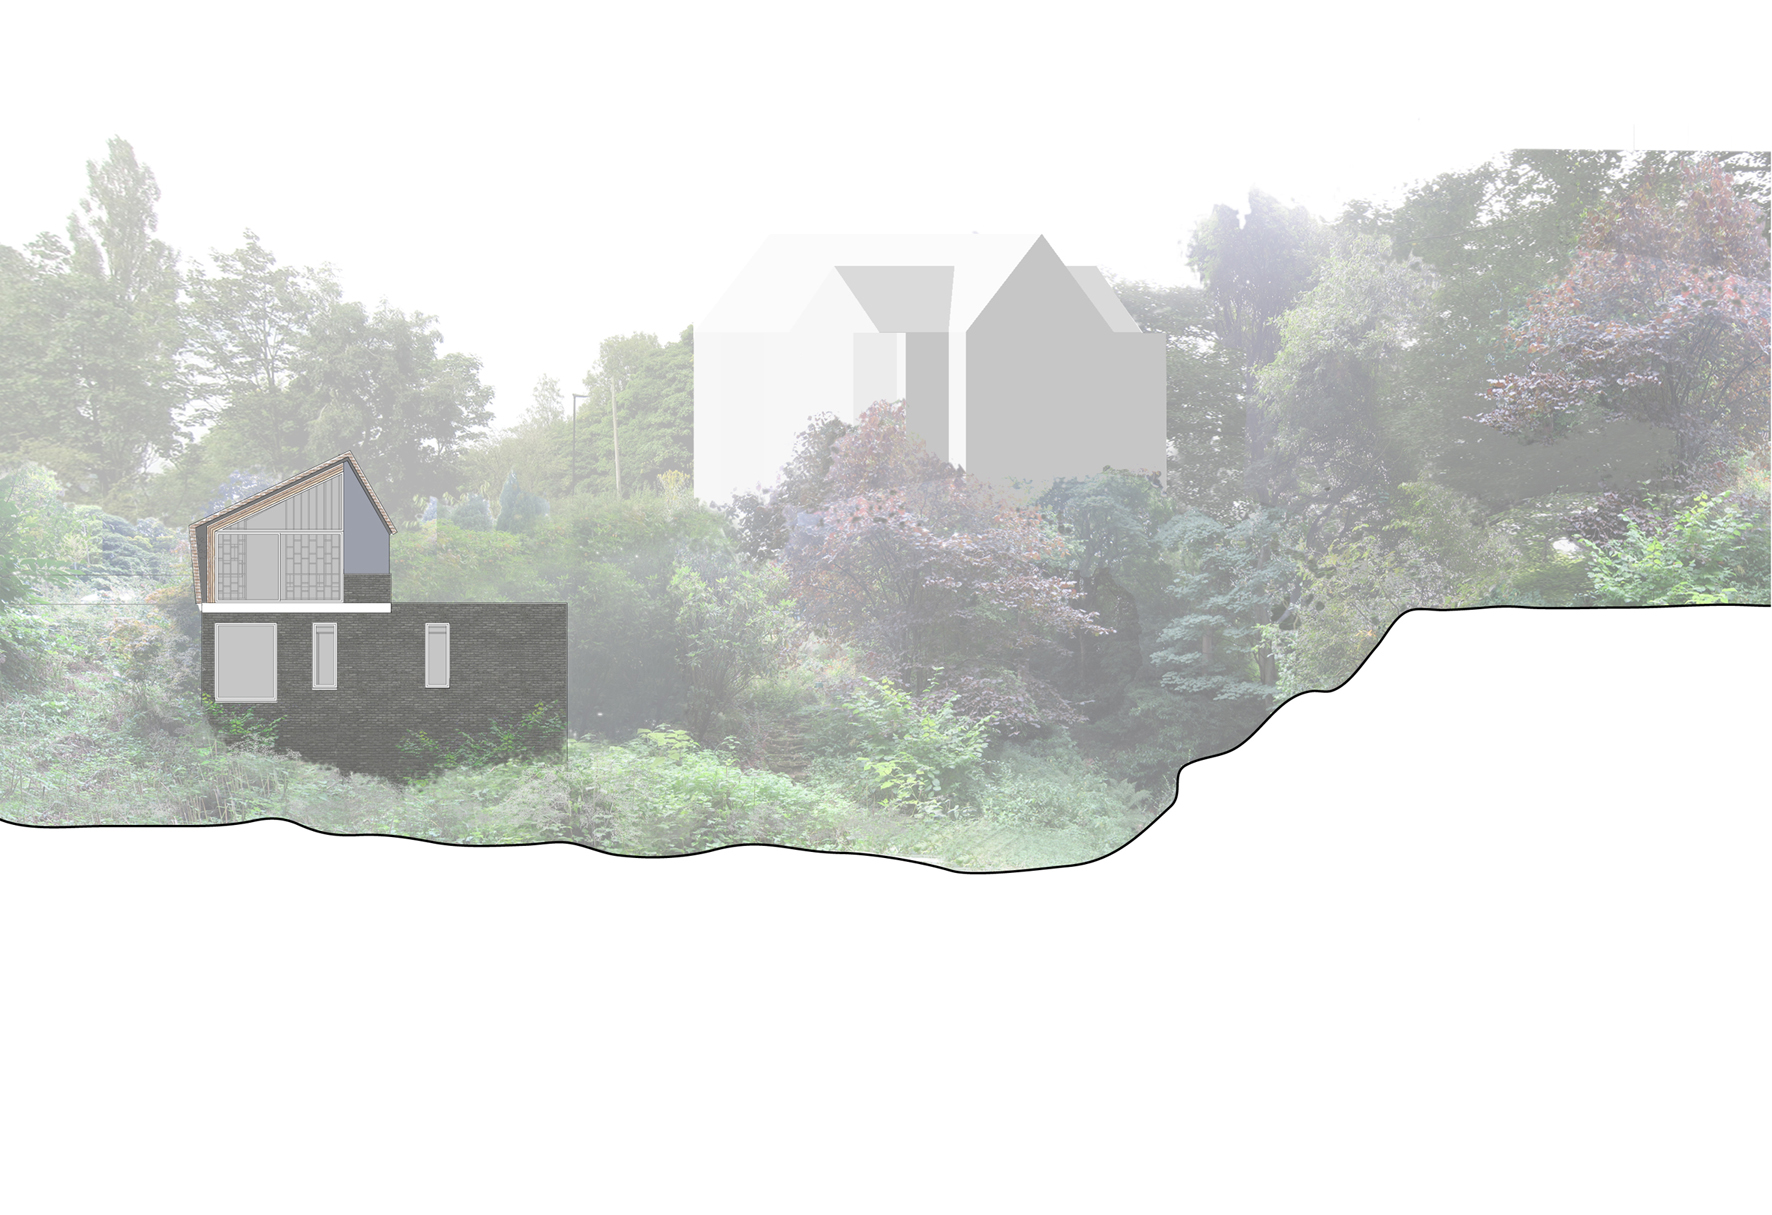 Hen House_Paul Testa Architecture